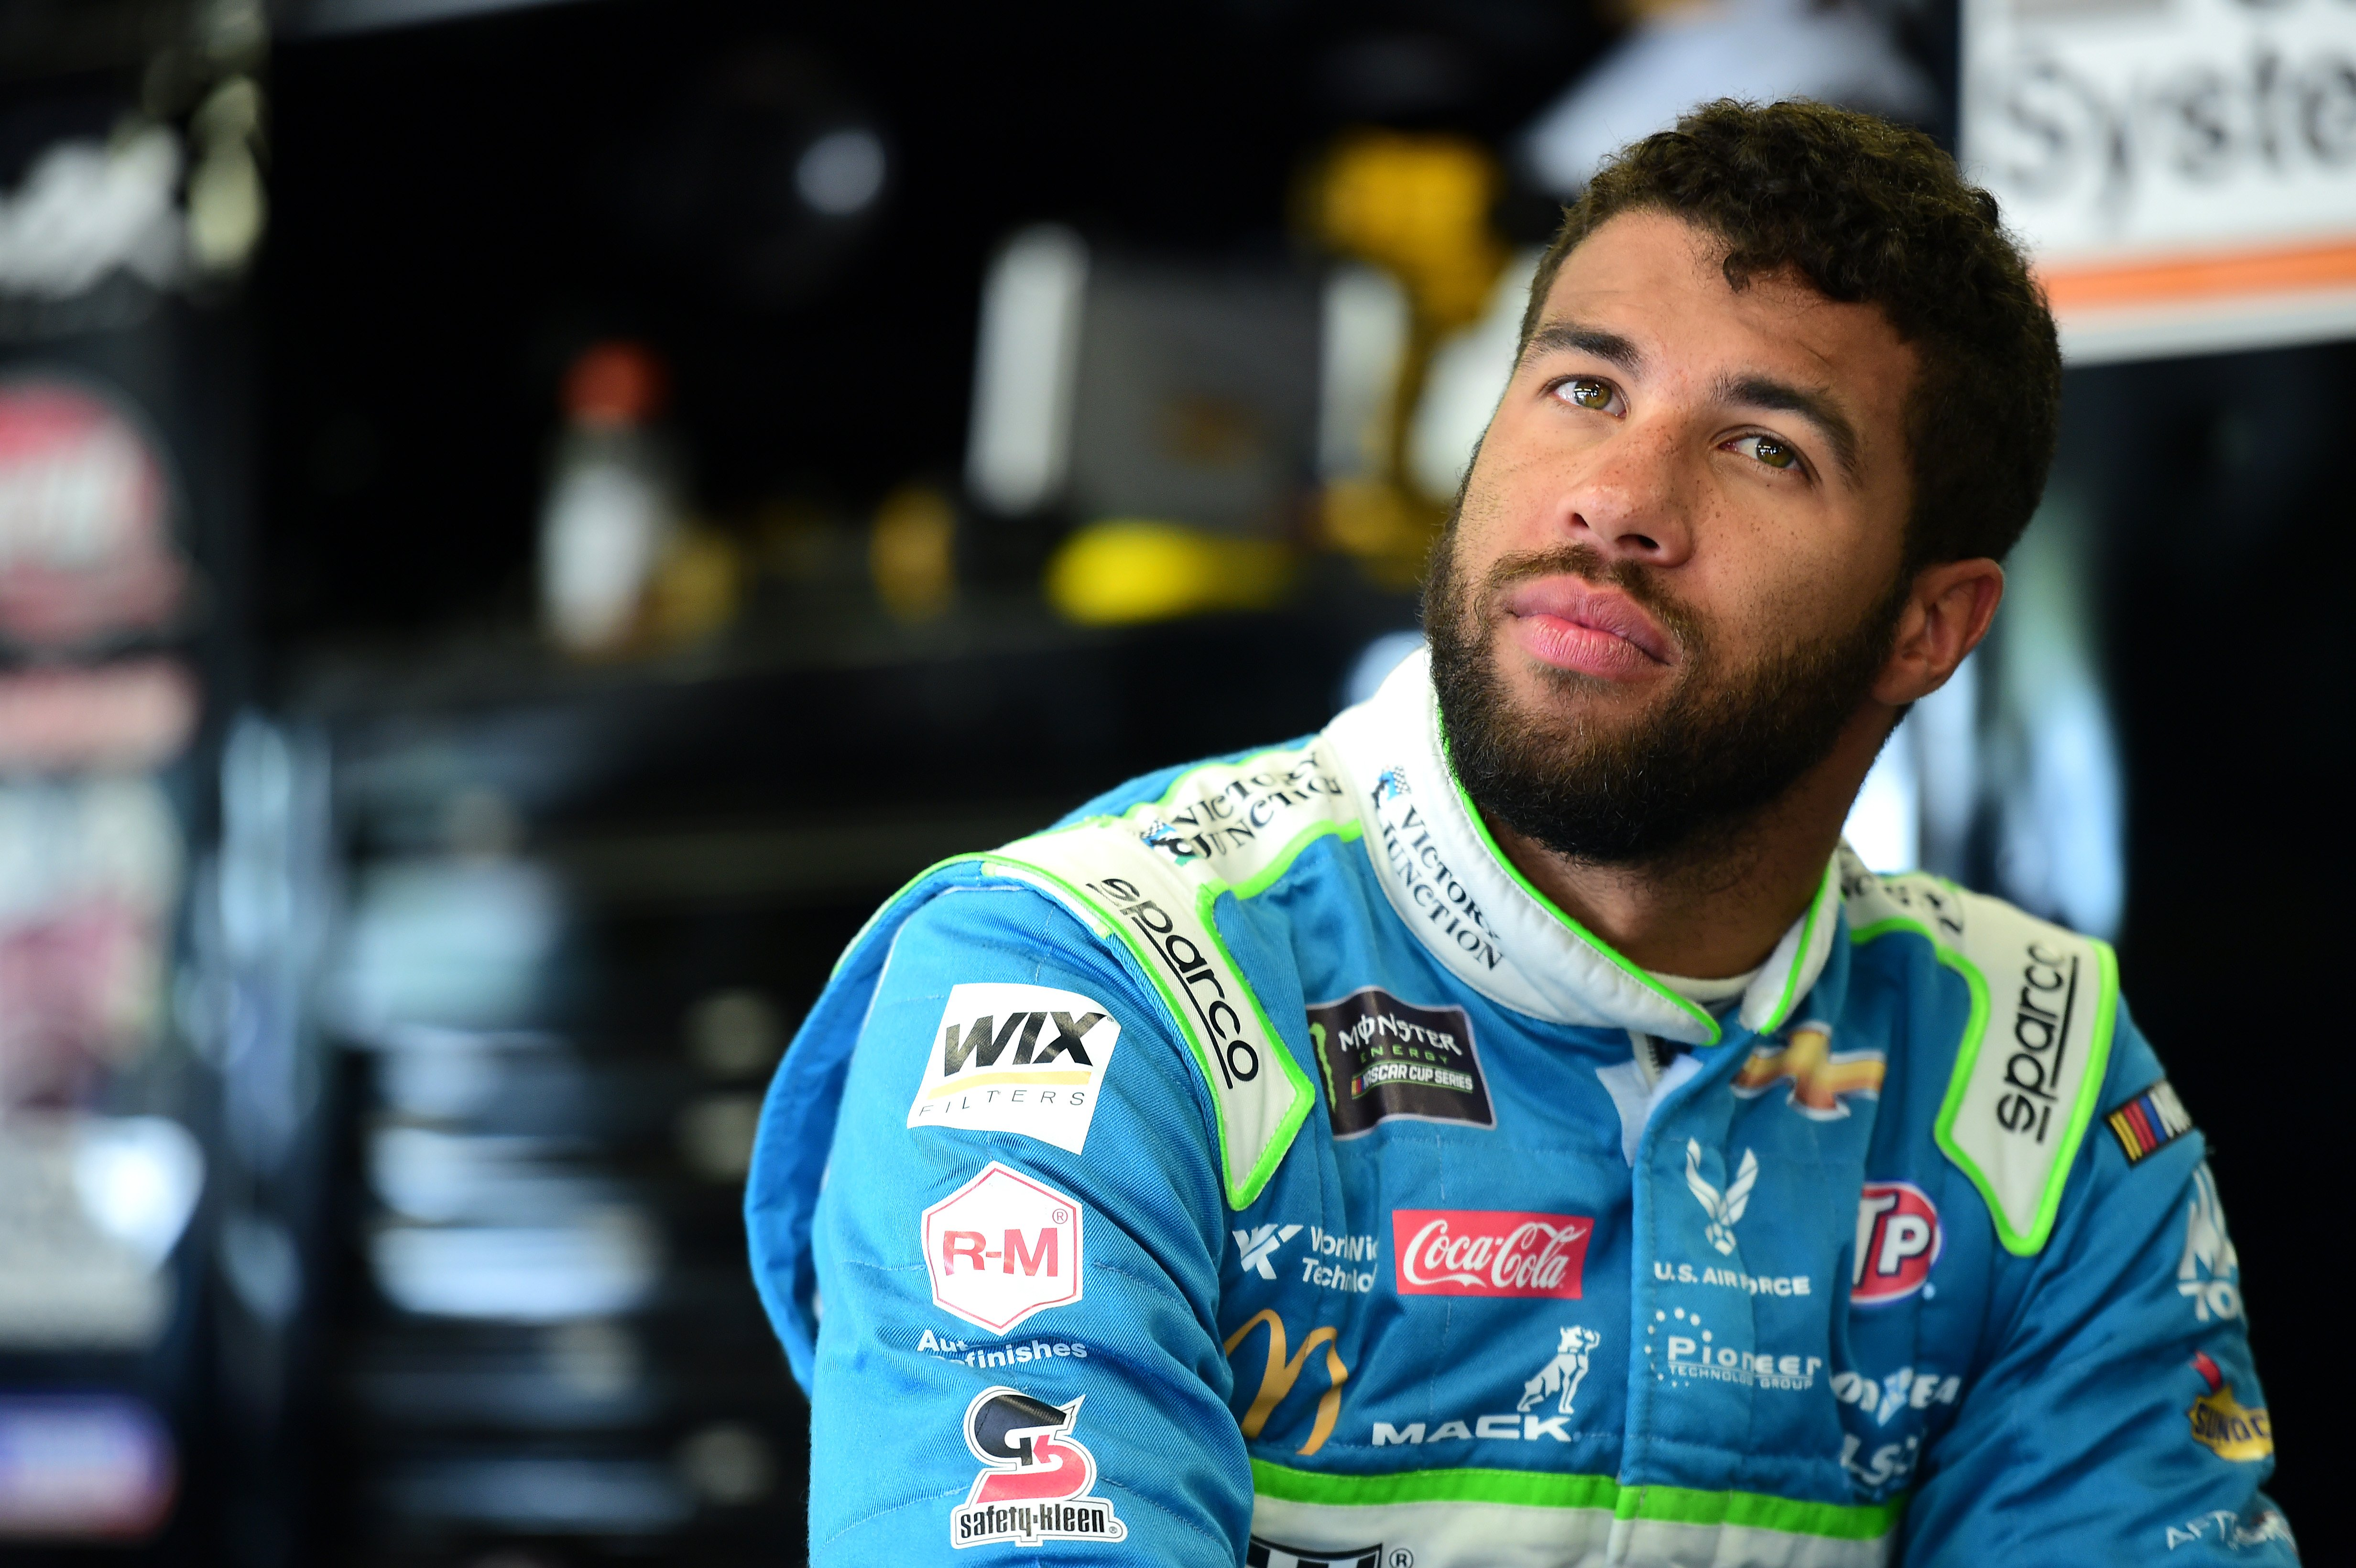 Bubba Wallace at New Hampshire Motor Speedway on July 20, 2019, in Loudon, New Hampshire. | Source: Getty Images